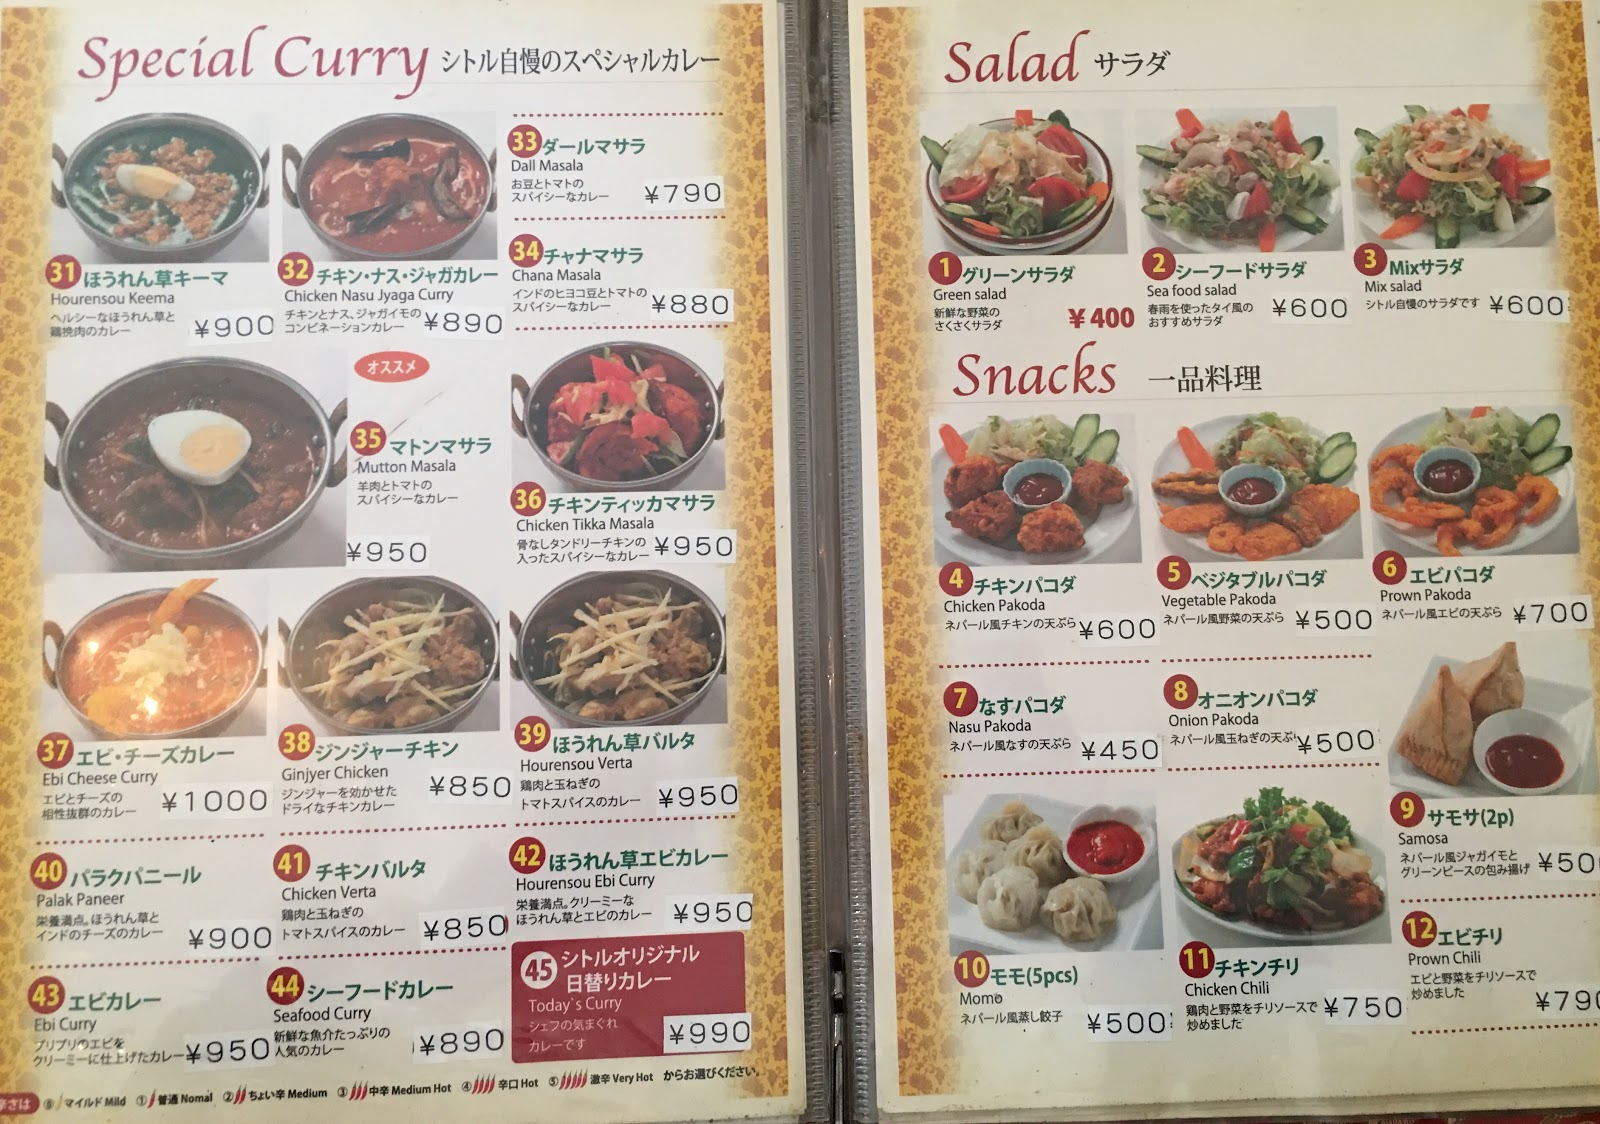 Jcs food reviews sital after church this sunday my wife and i wandered around the kappabashi area looking for a restaurant turns out the famous area that sells restaurant forumfinder Images